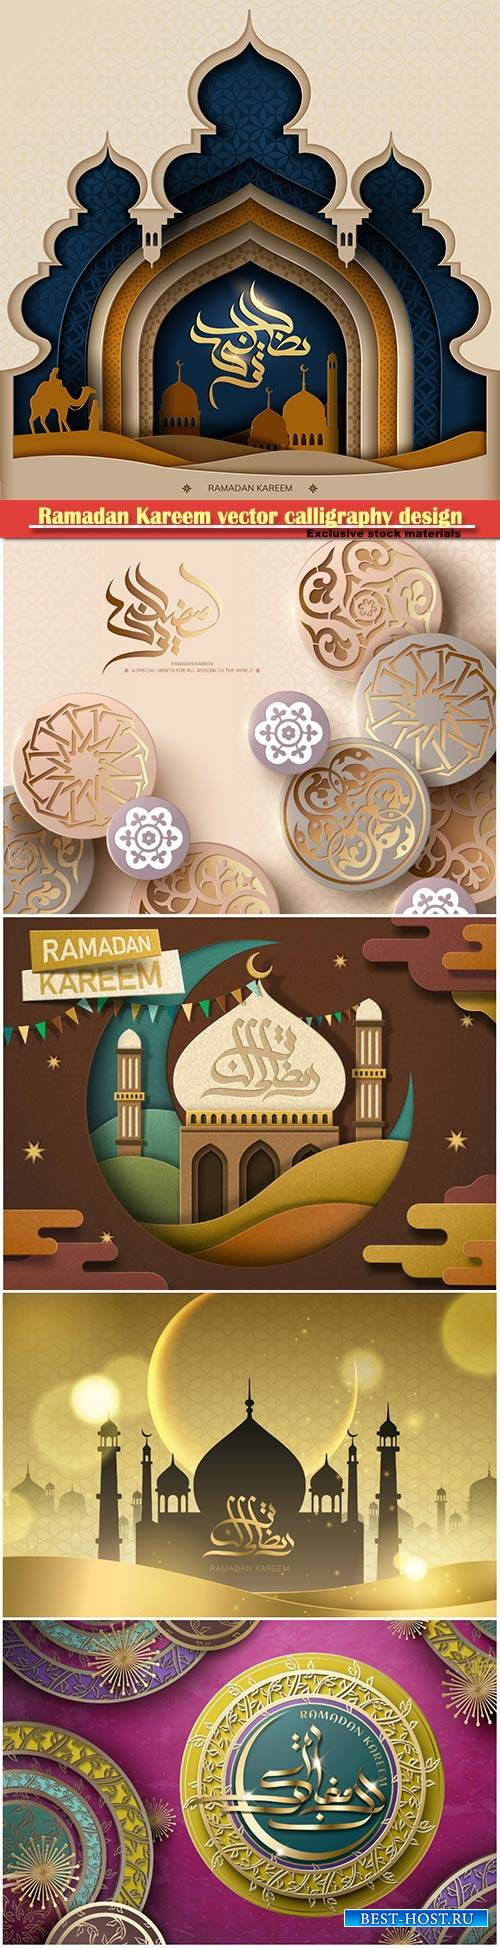 Ramadan Kareem vector calligraphy design with decorative floral pattern,mosque silhouette, crescent and glittering islamic background # 2